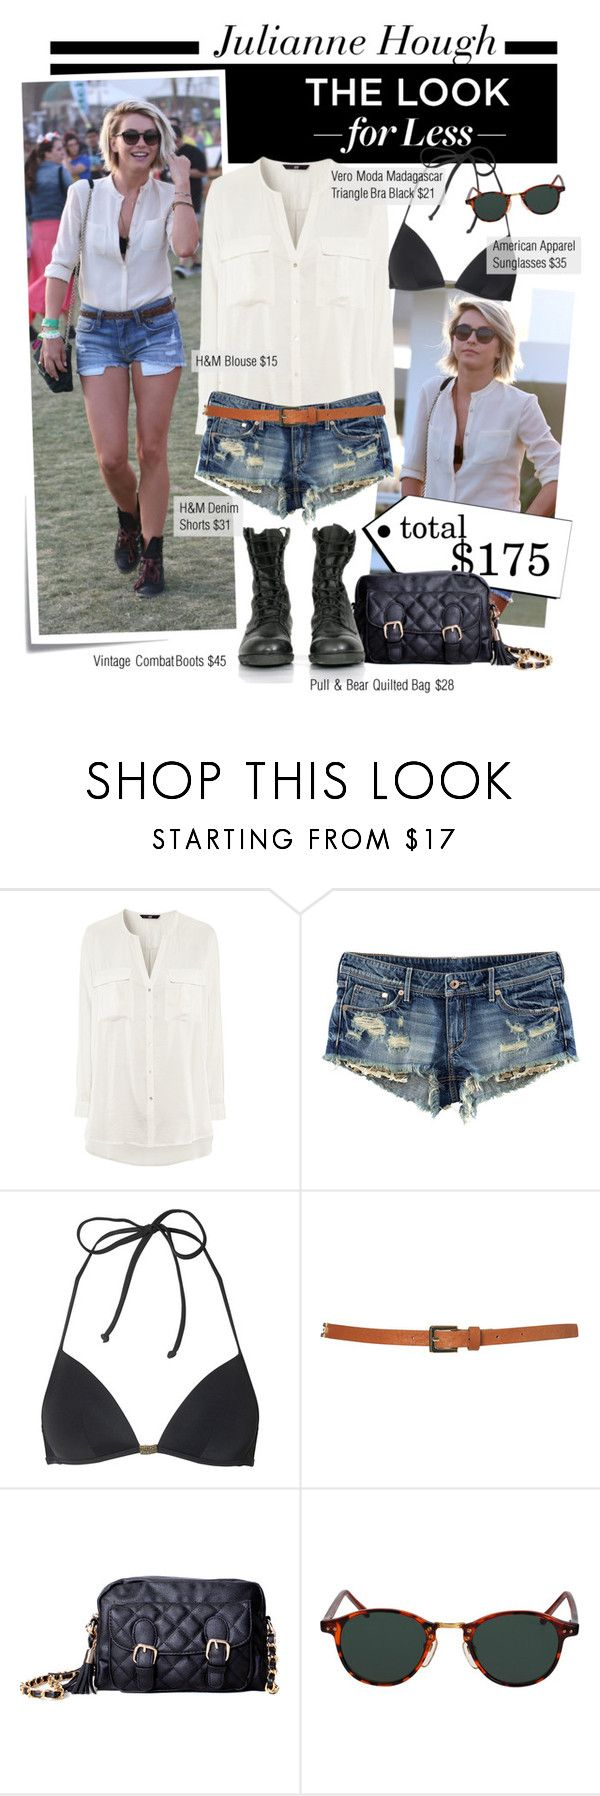 """""""Get the Look for Less: Julianne Hough at Coachella"""" by houseofhauteness ❤ liked on Polyvore featuring Post-It, JULIANNE, H&M, Vero Moda, Topshop, Pull&Bear, American Apparel, quilted handbags, combat boots and denim cutoffs"""